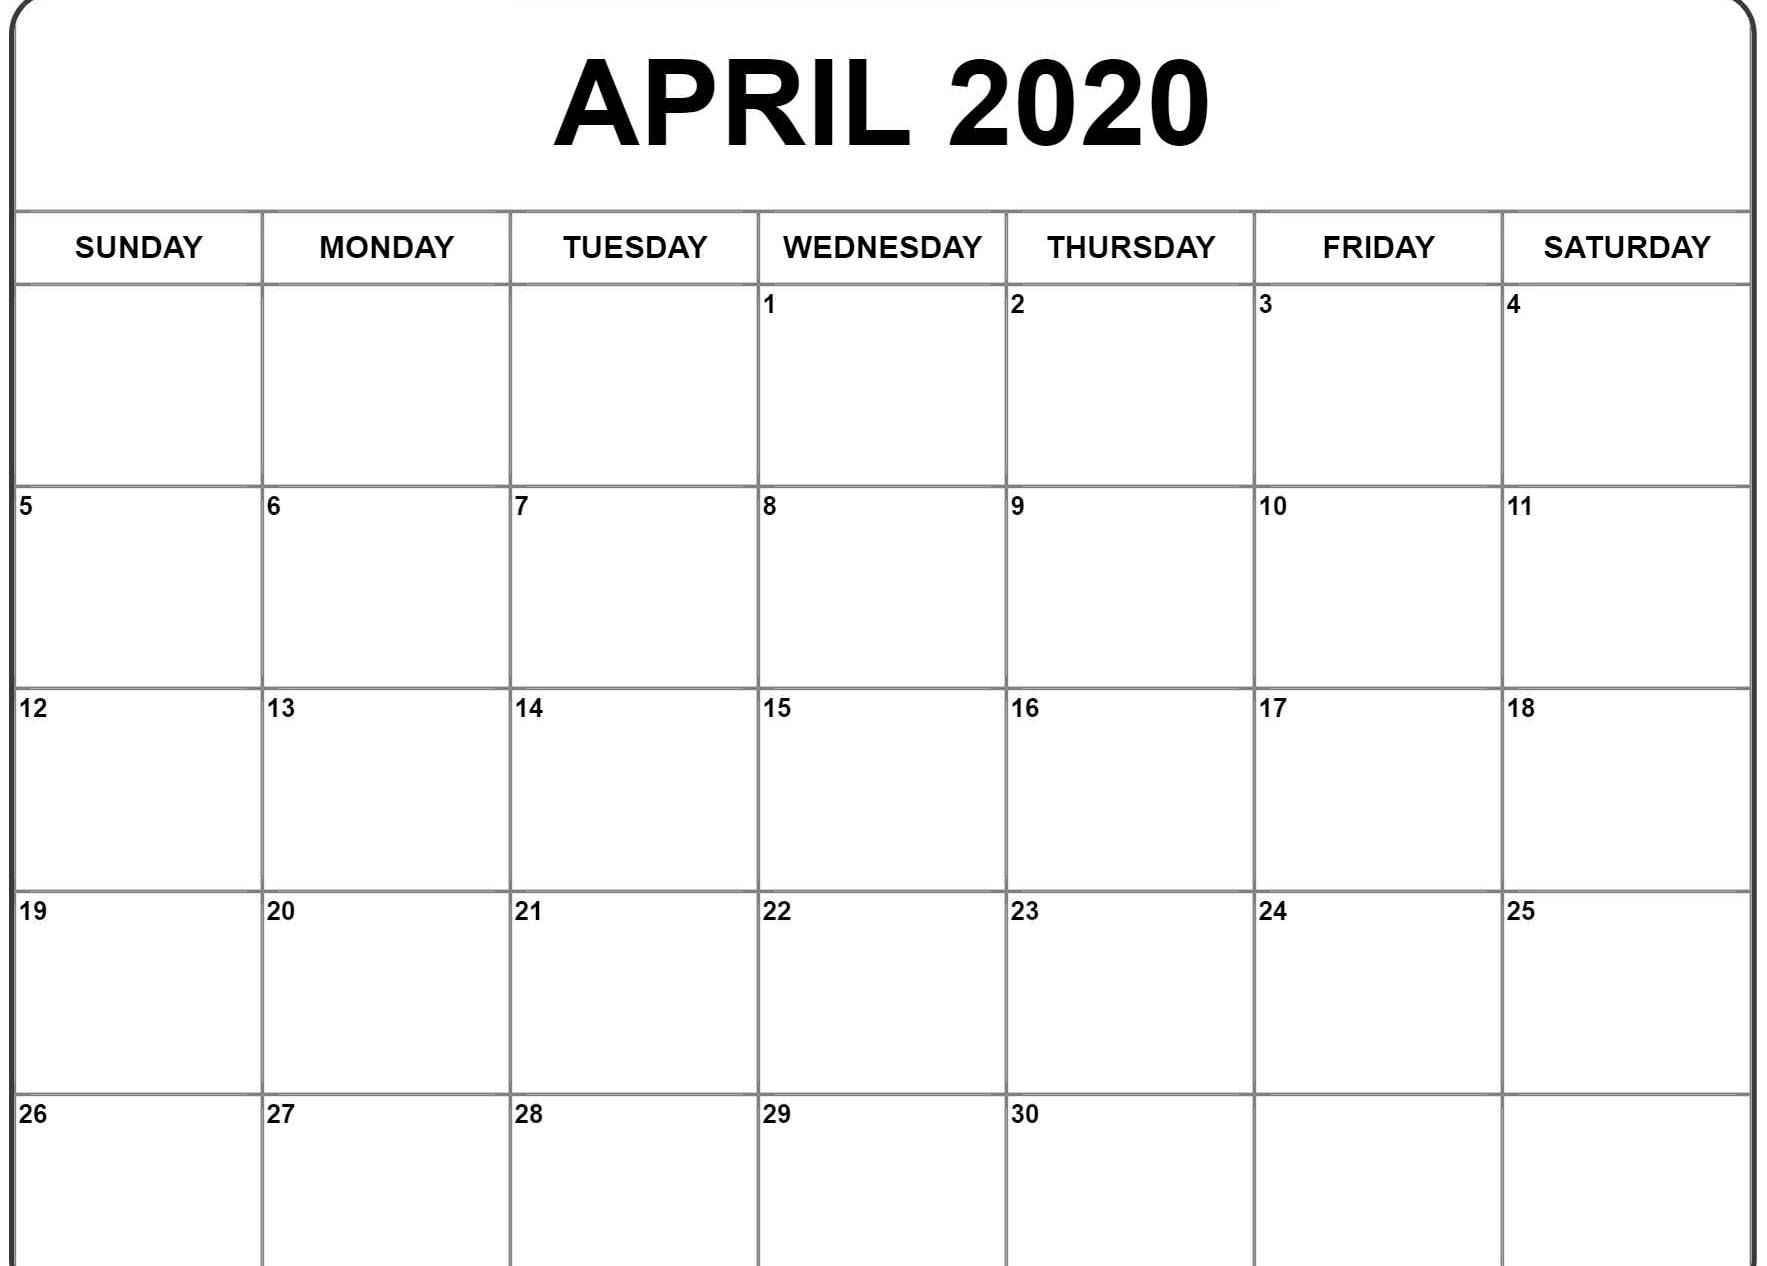 April 2020 Calendar Template | July Calendar, Free Printable